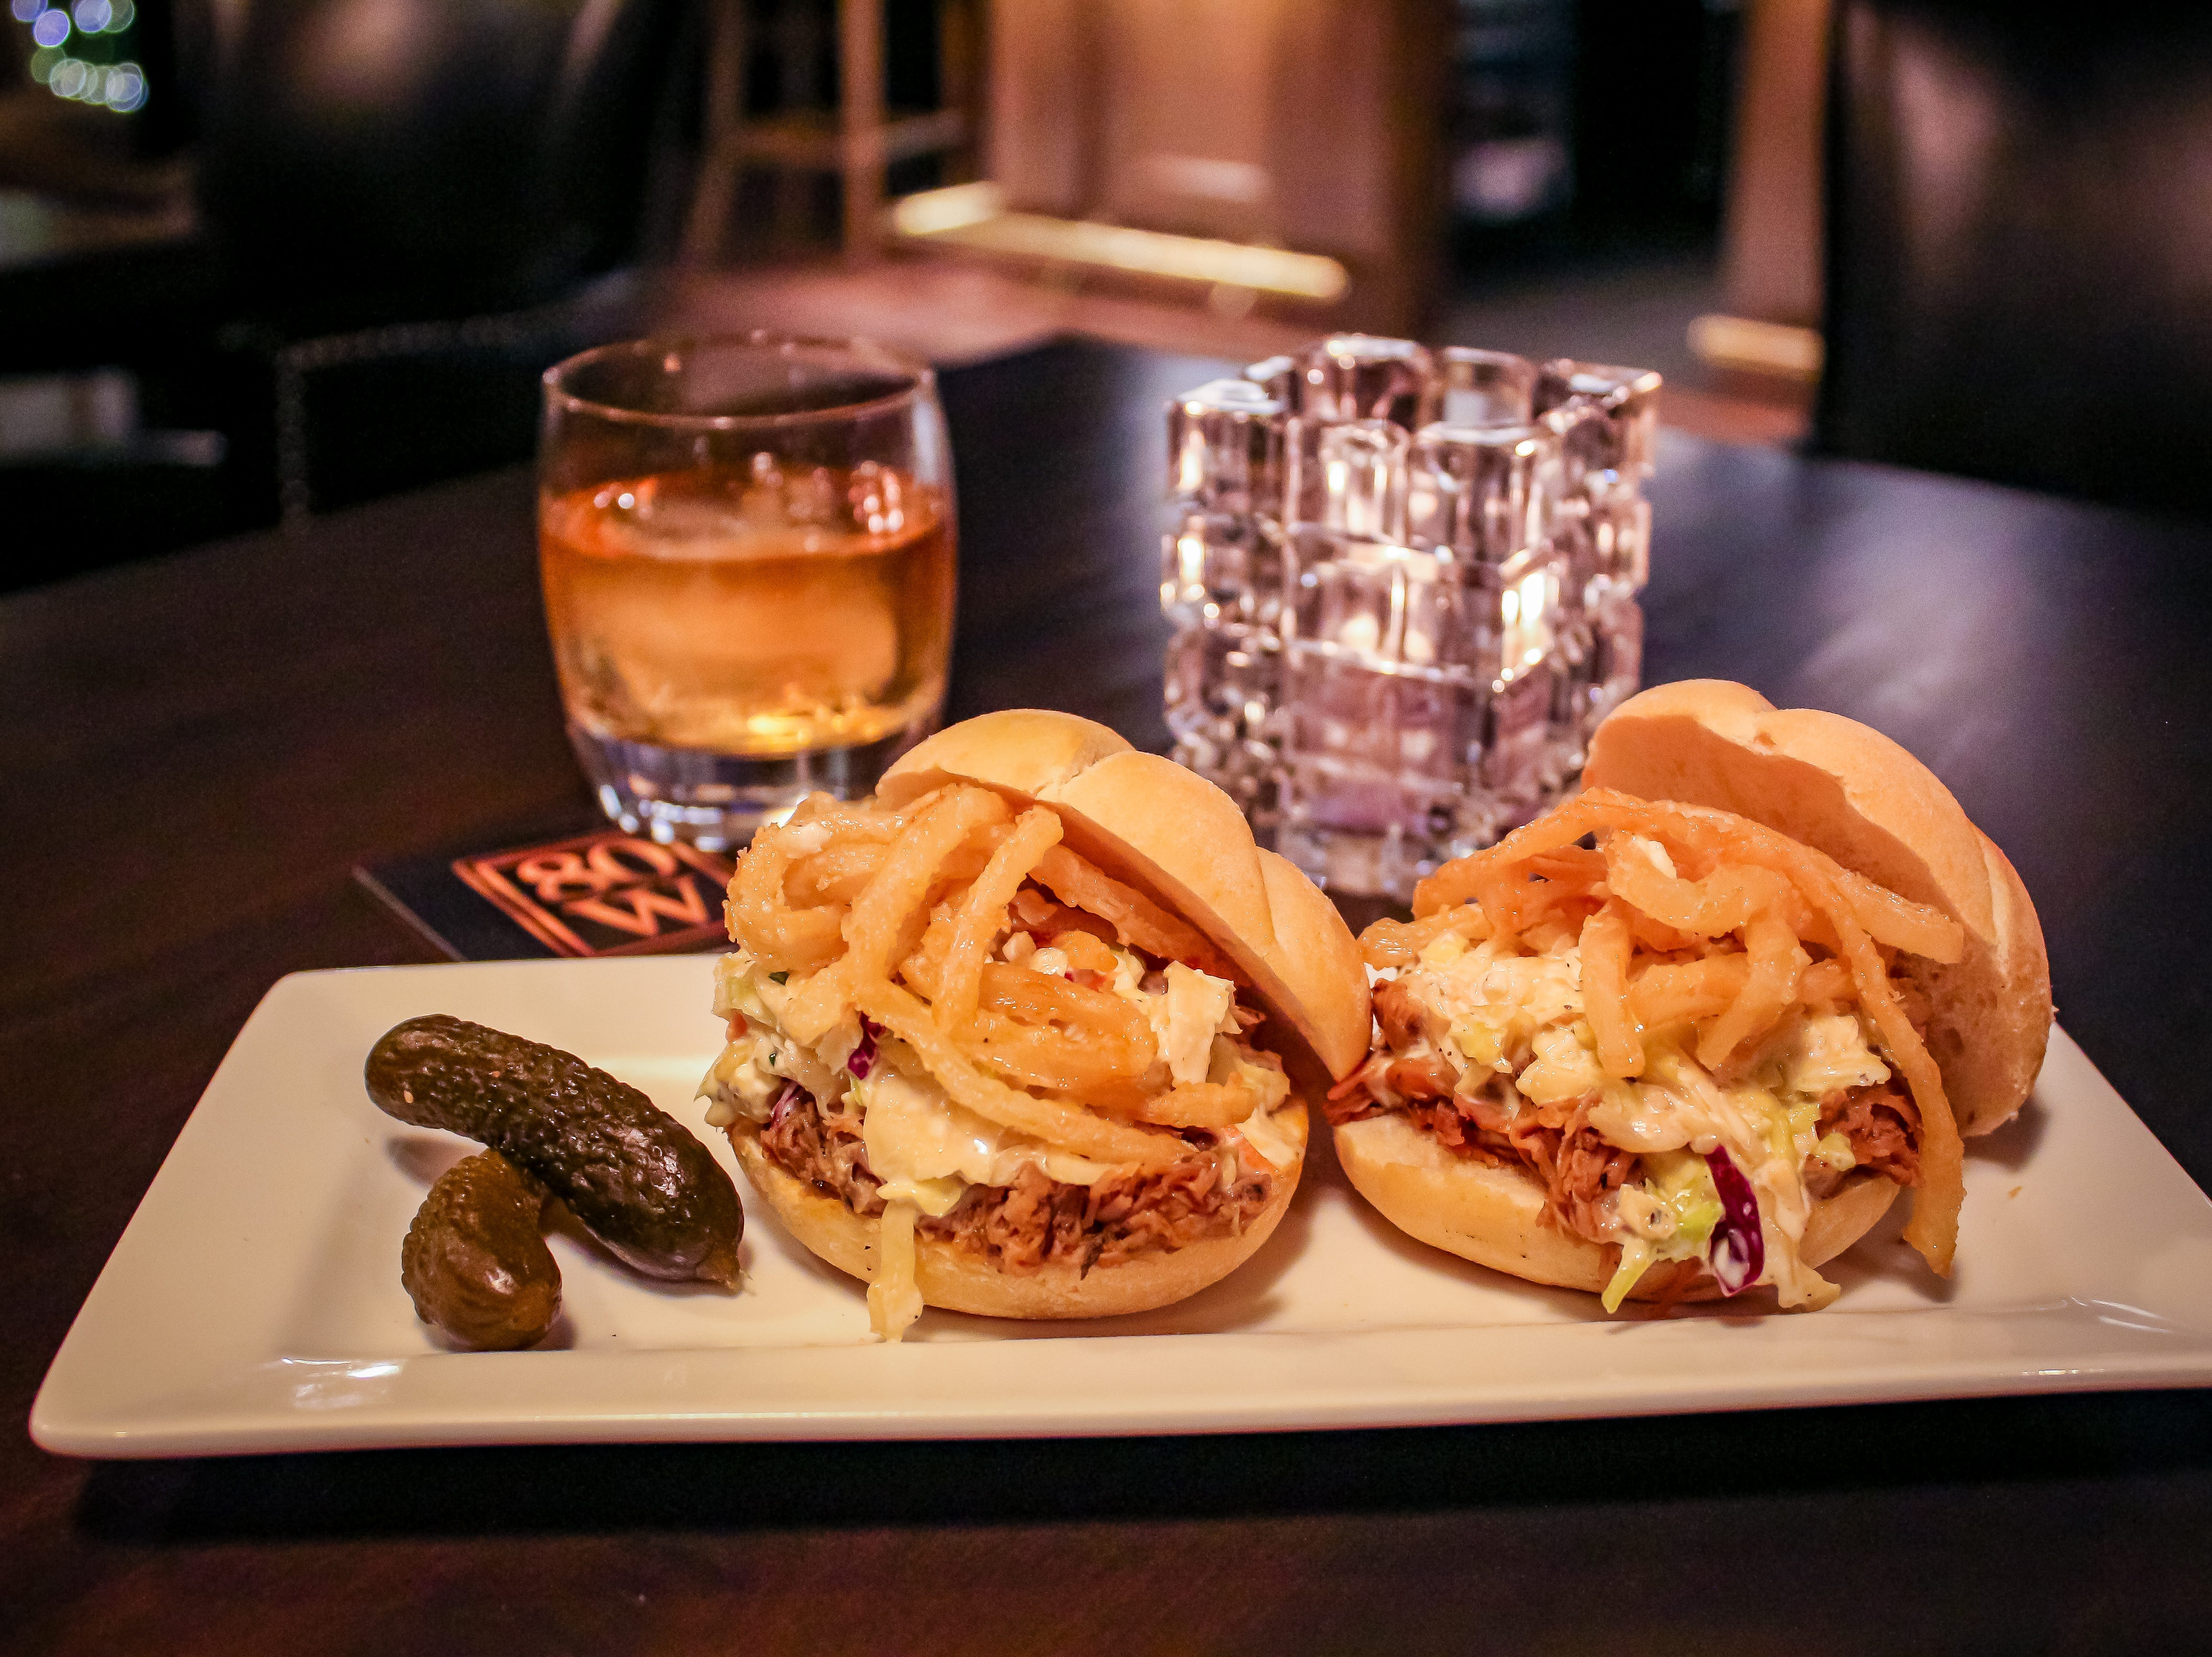 Pulled pork sliders are topped with blue cheese slaw, crispy onions and pickles.